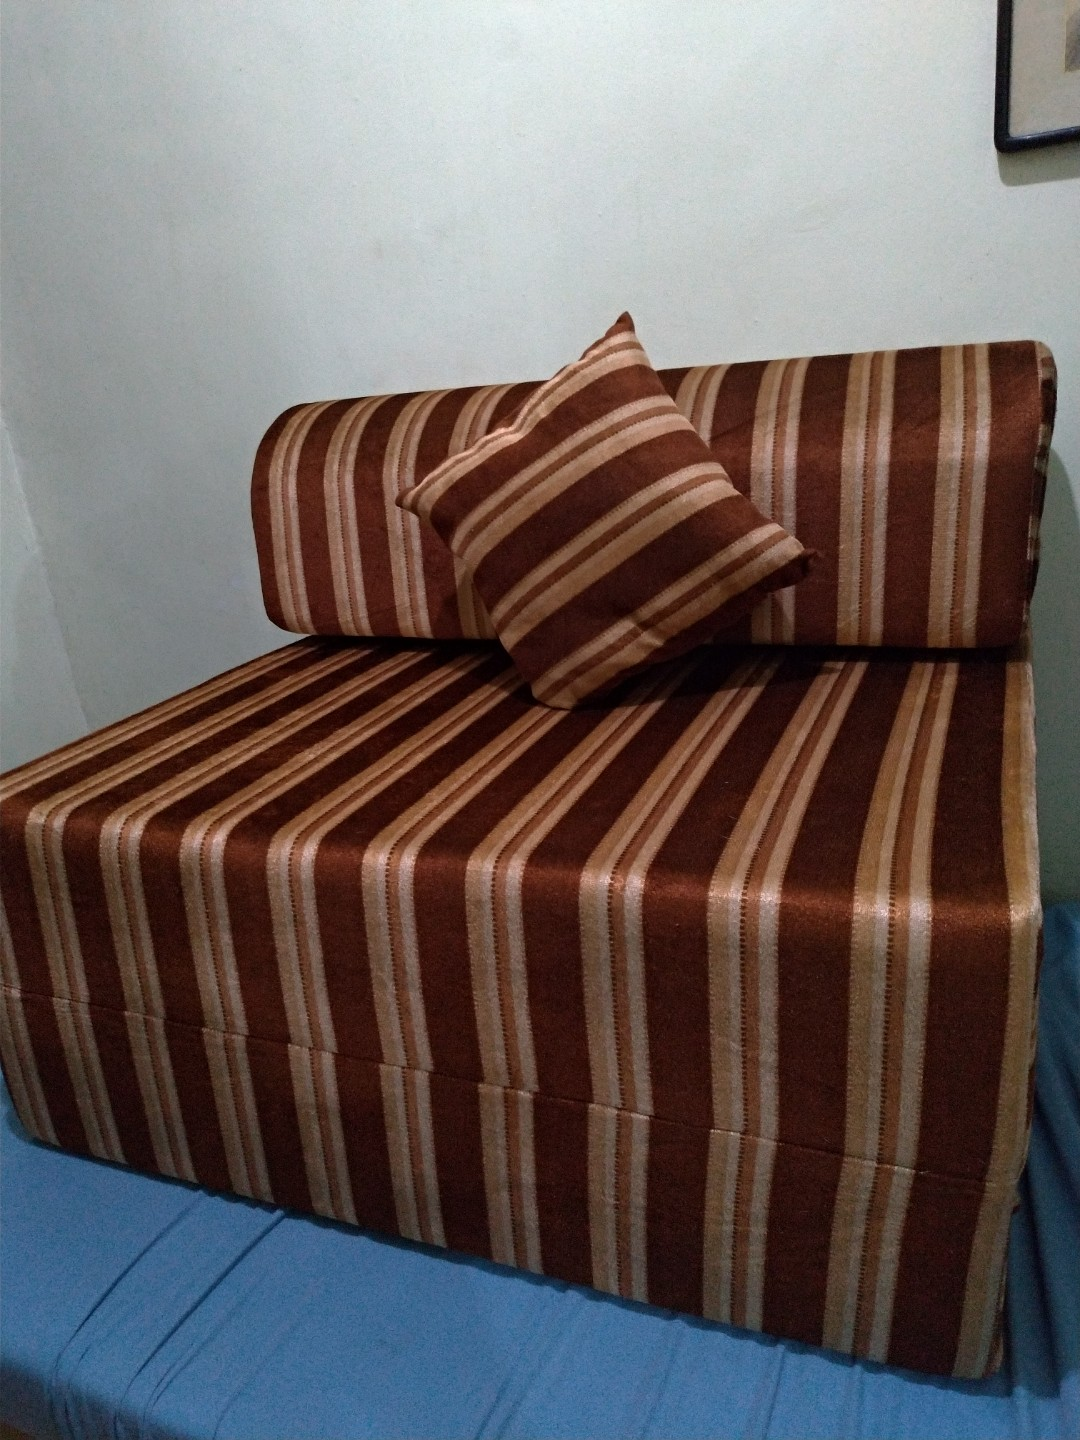 Sofa Bed For Sale Tarlac Sold Tnx Jl Uratex Sofabed 7 5x36 5x75 Inches